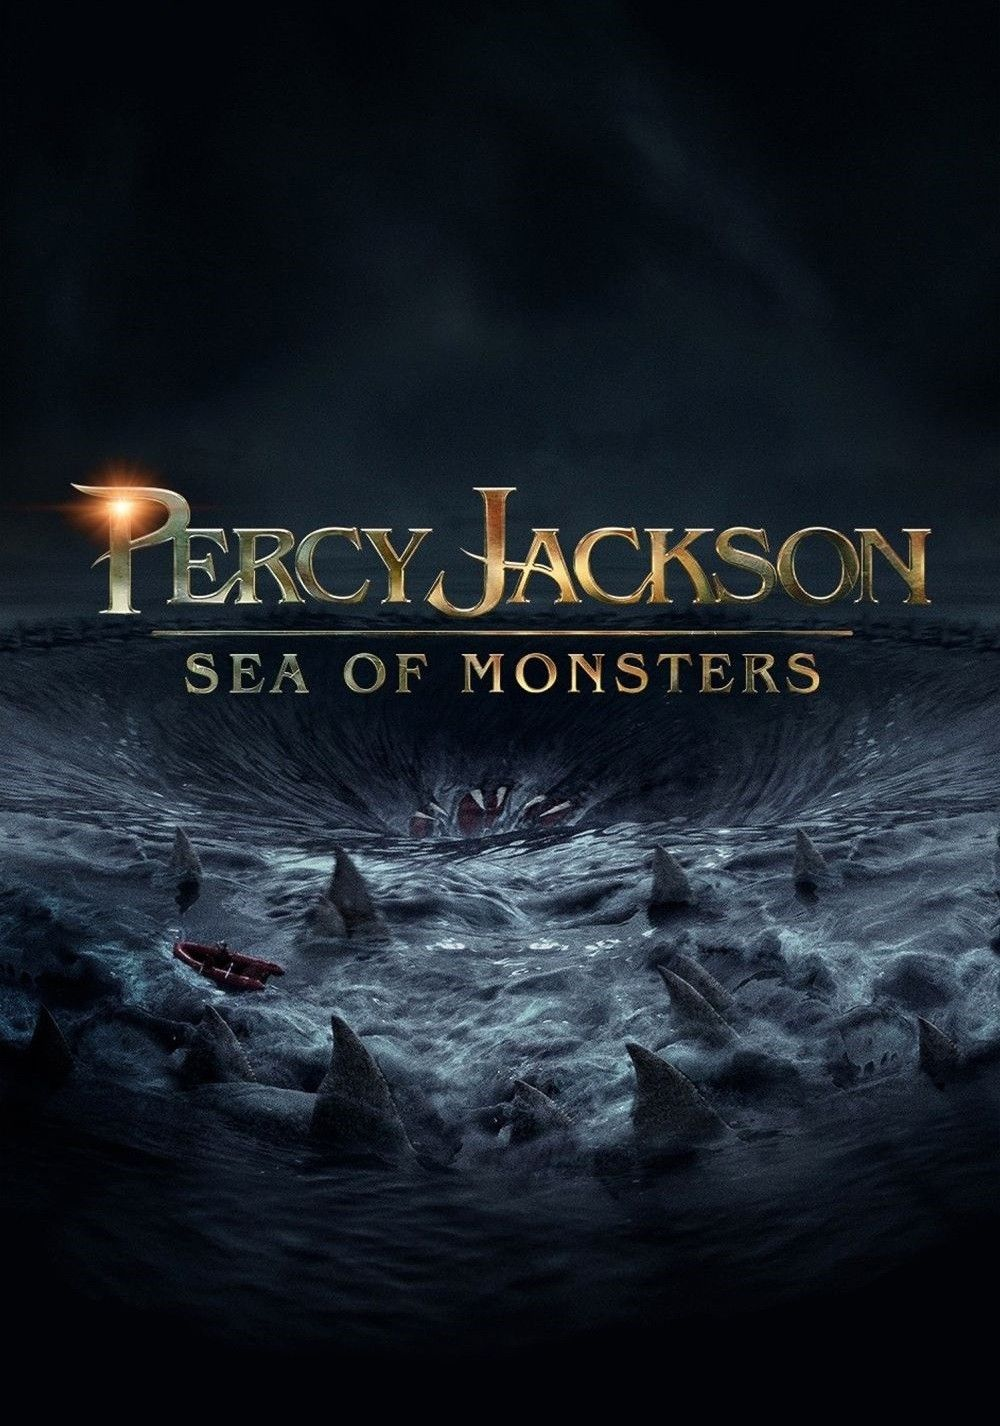 Percy Jackson: Sea of Monsters (2013) [1000x1426] HD Wallpaper From Gallsource.com